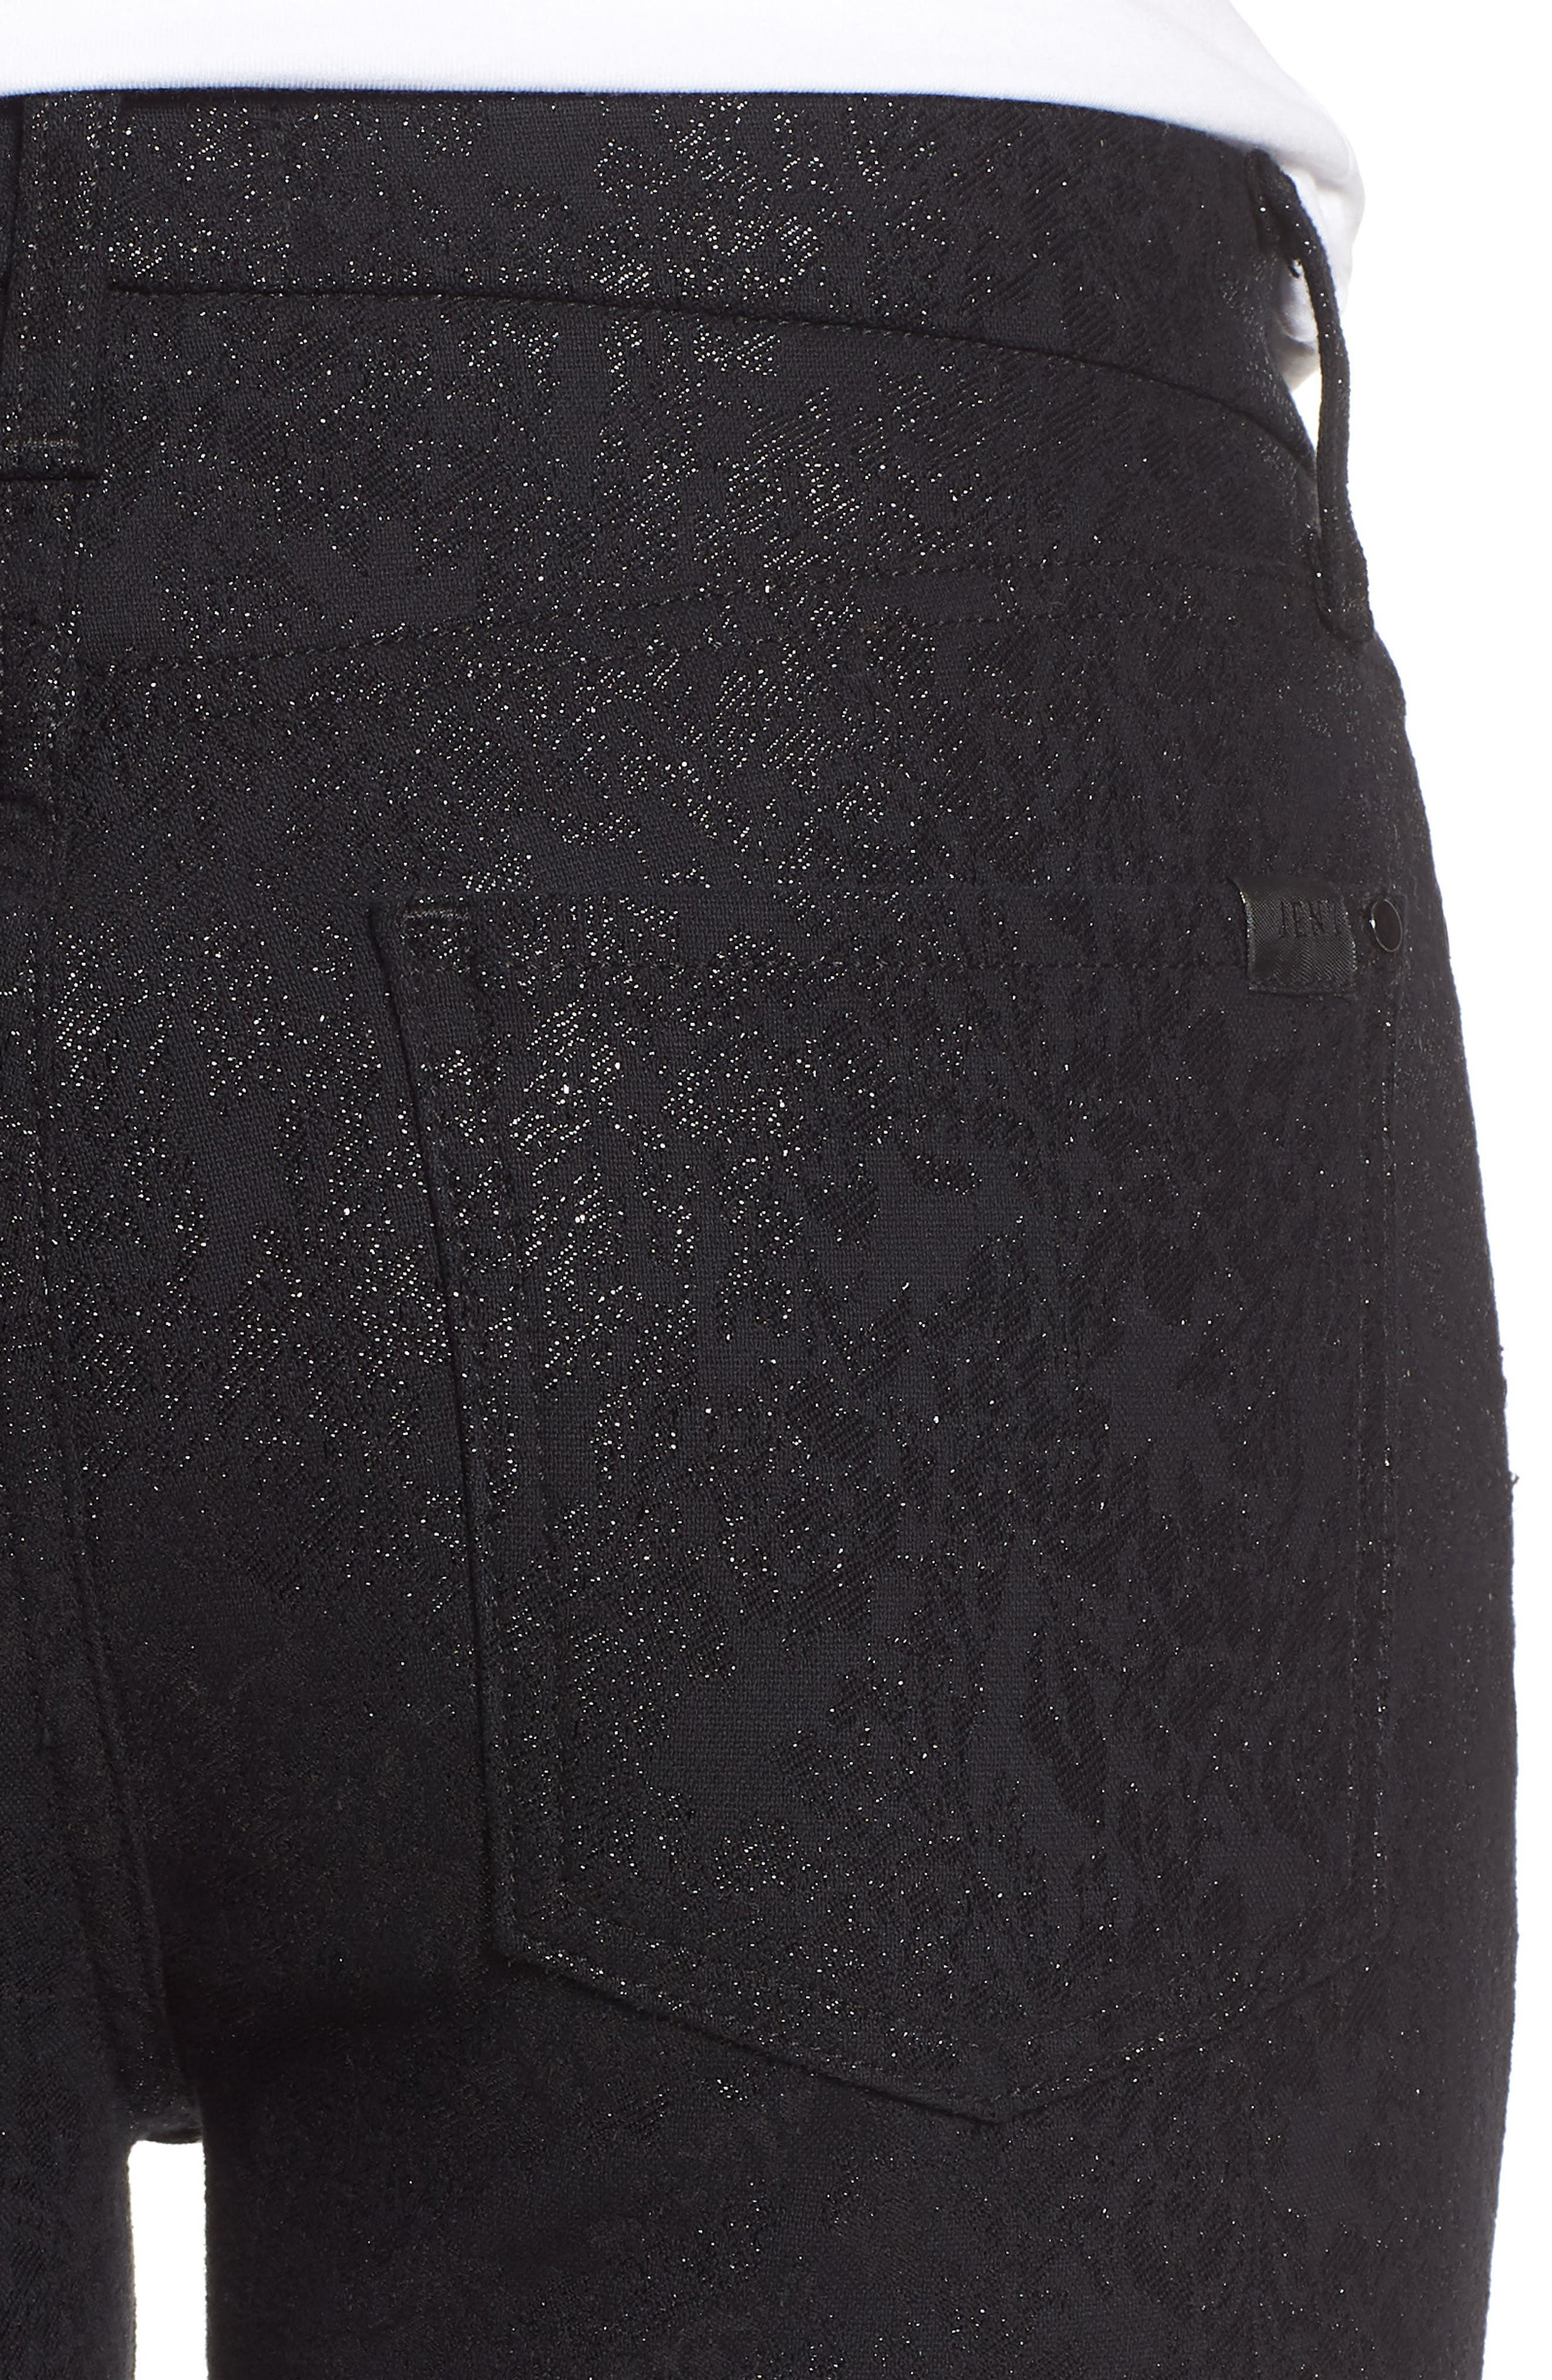 JEN7 BY 7 FOR ALL MANKIND, Floral Metallic Ankle Skinny Jeans, Alternate thumbnail 5, color, BLACK